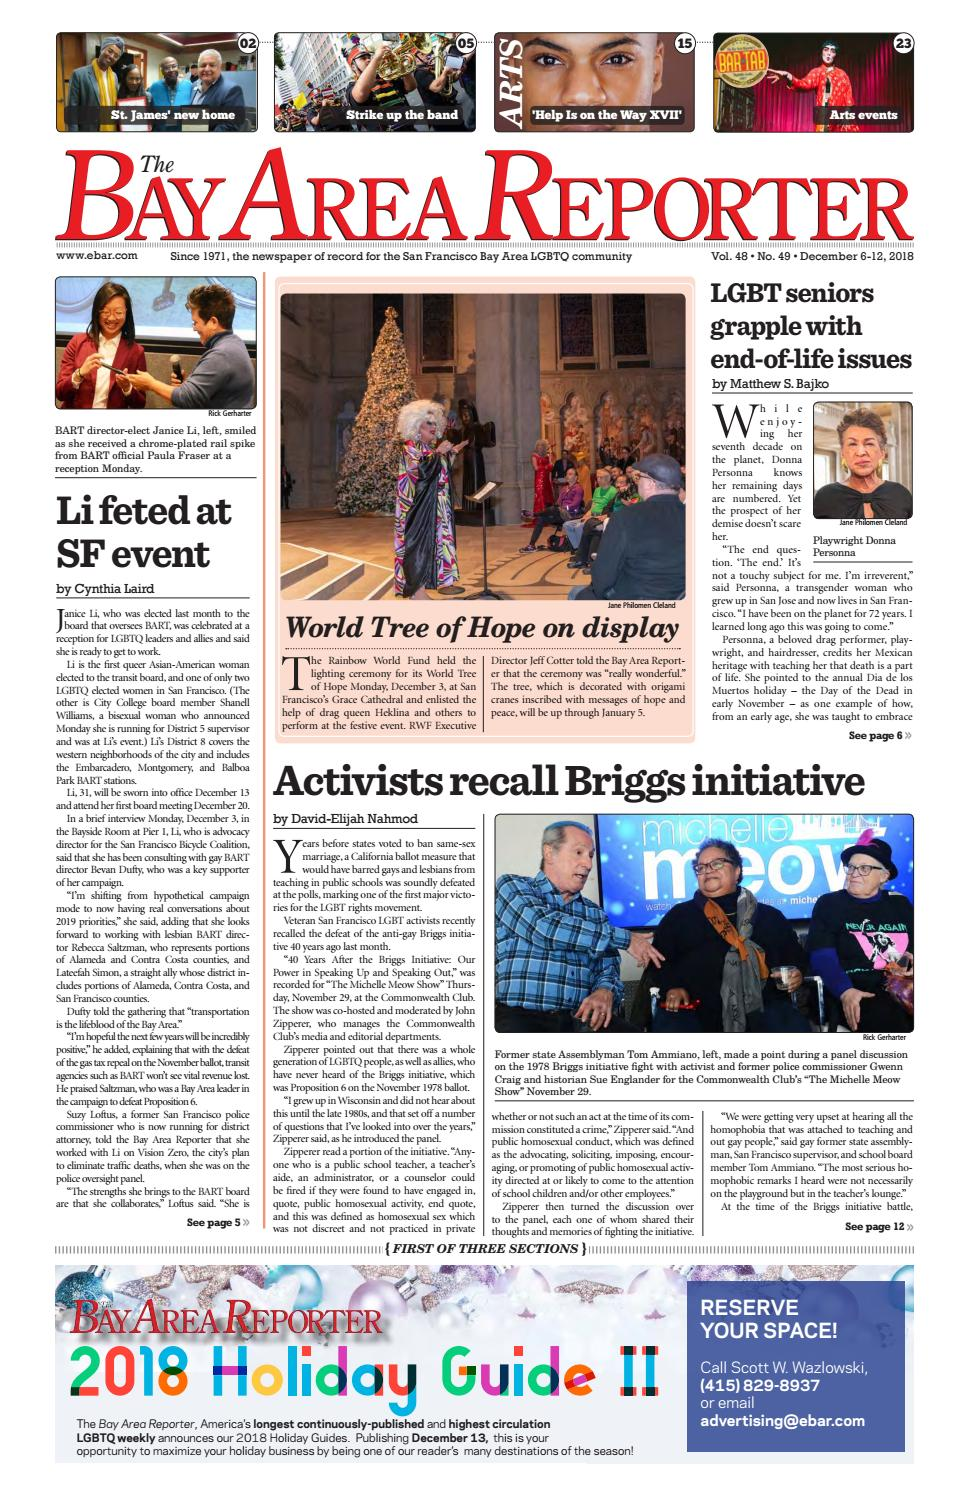 December 6, 2018 edition of the Bay Area Reporter by Bay